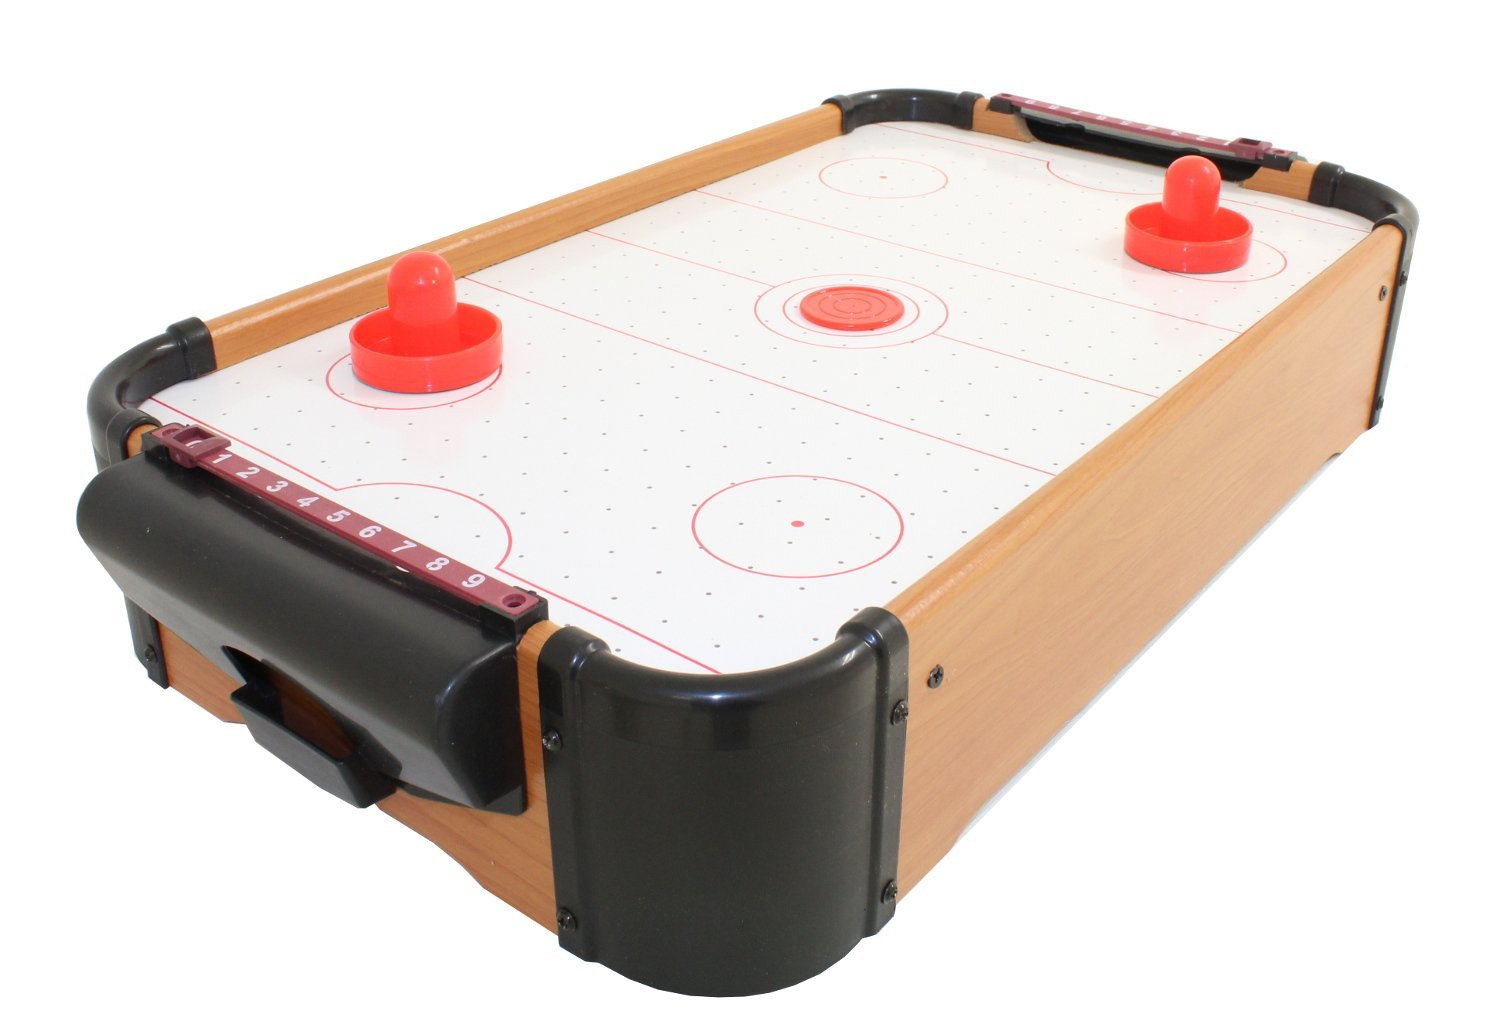 Electric Home Table Top Air Hockey Family Game Pucks Paddles global gizmos